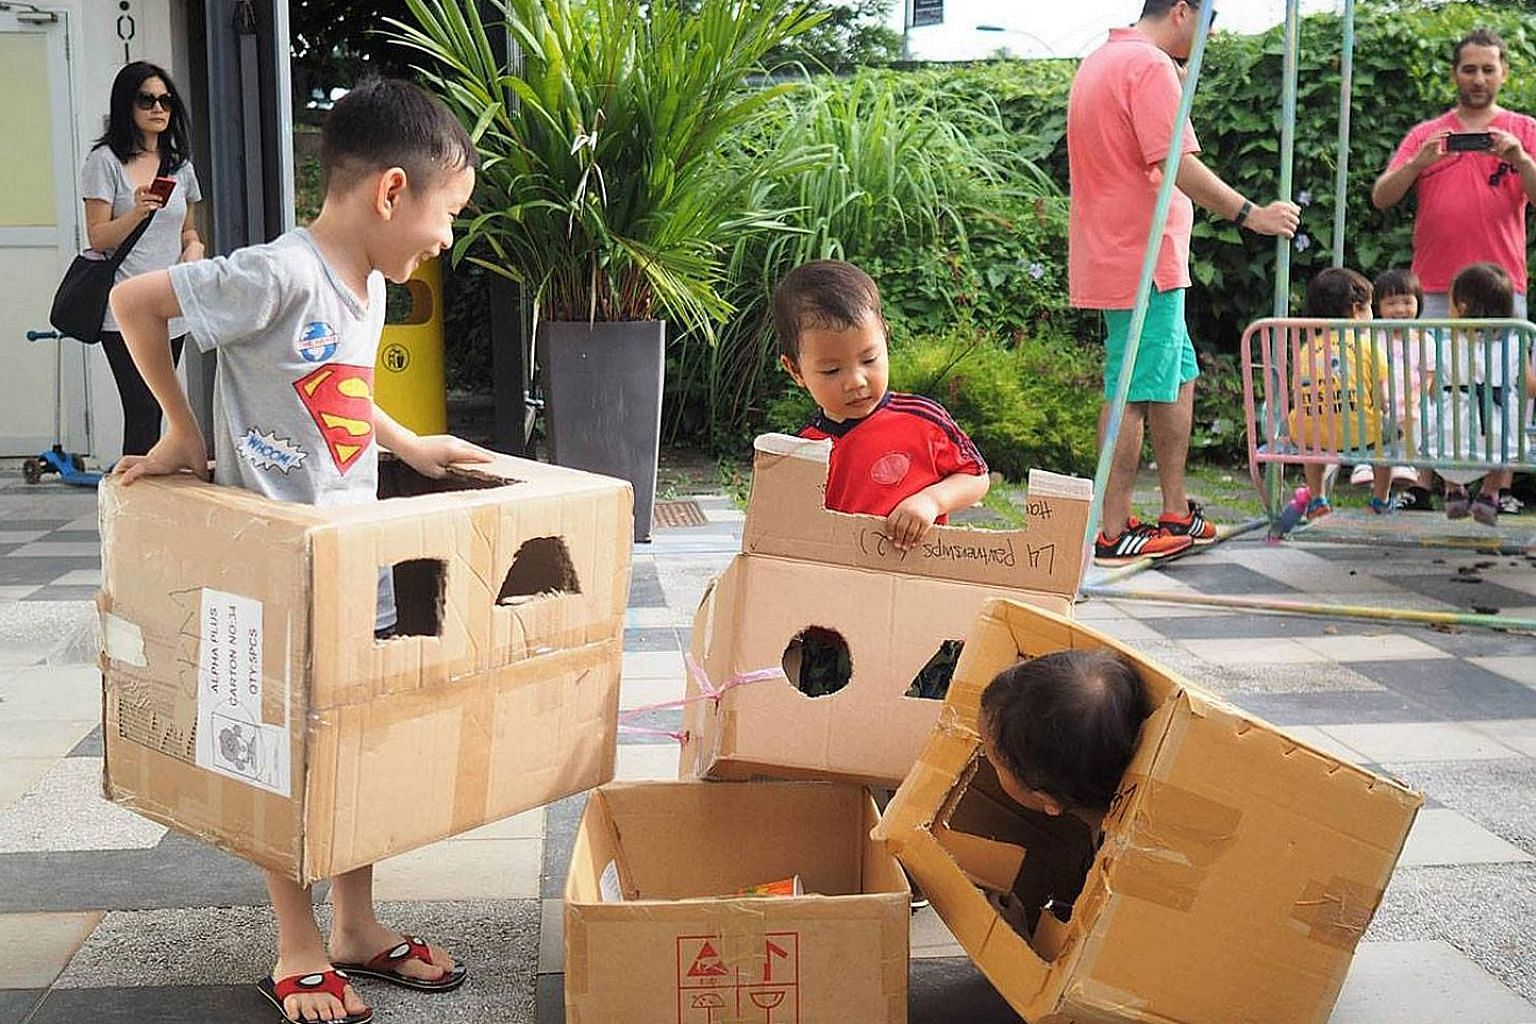 Chapter Zero Singapore will set up a playground for children using recycled materials such as wooden pallets and cardboard boxes.